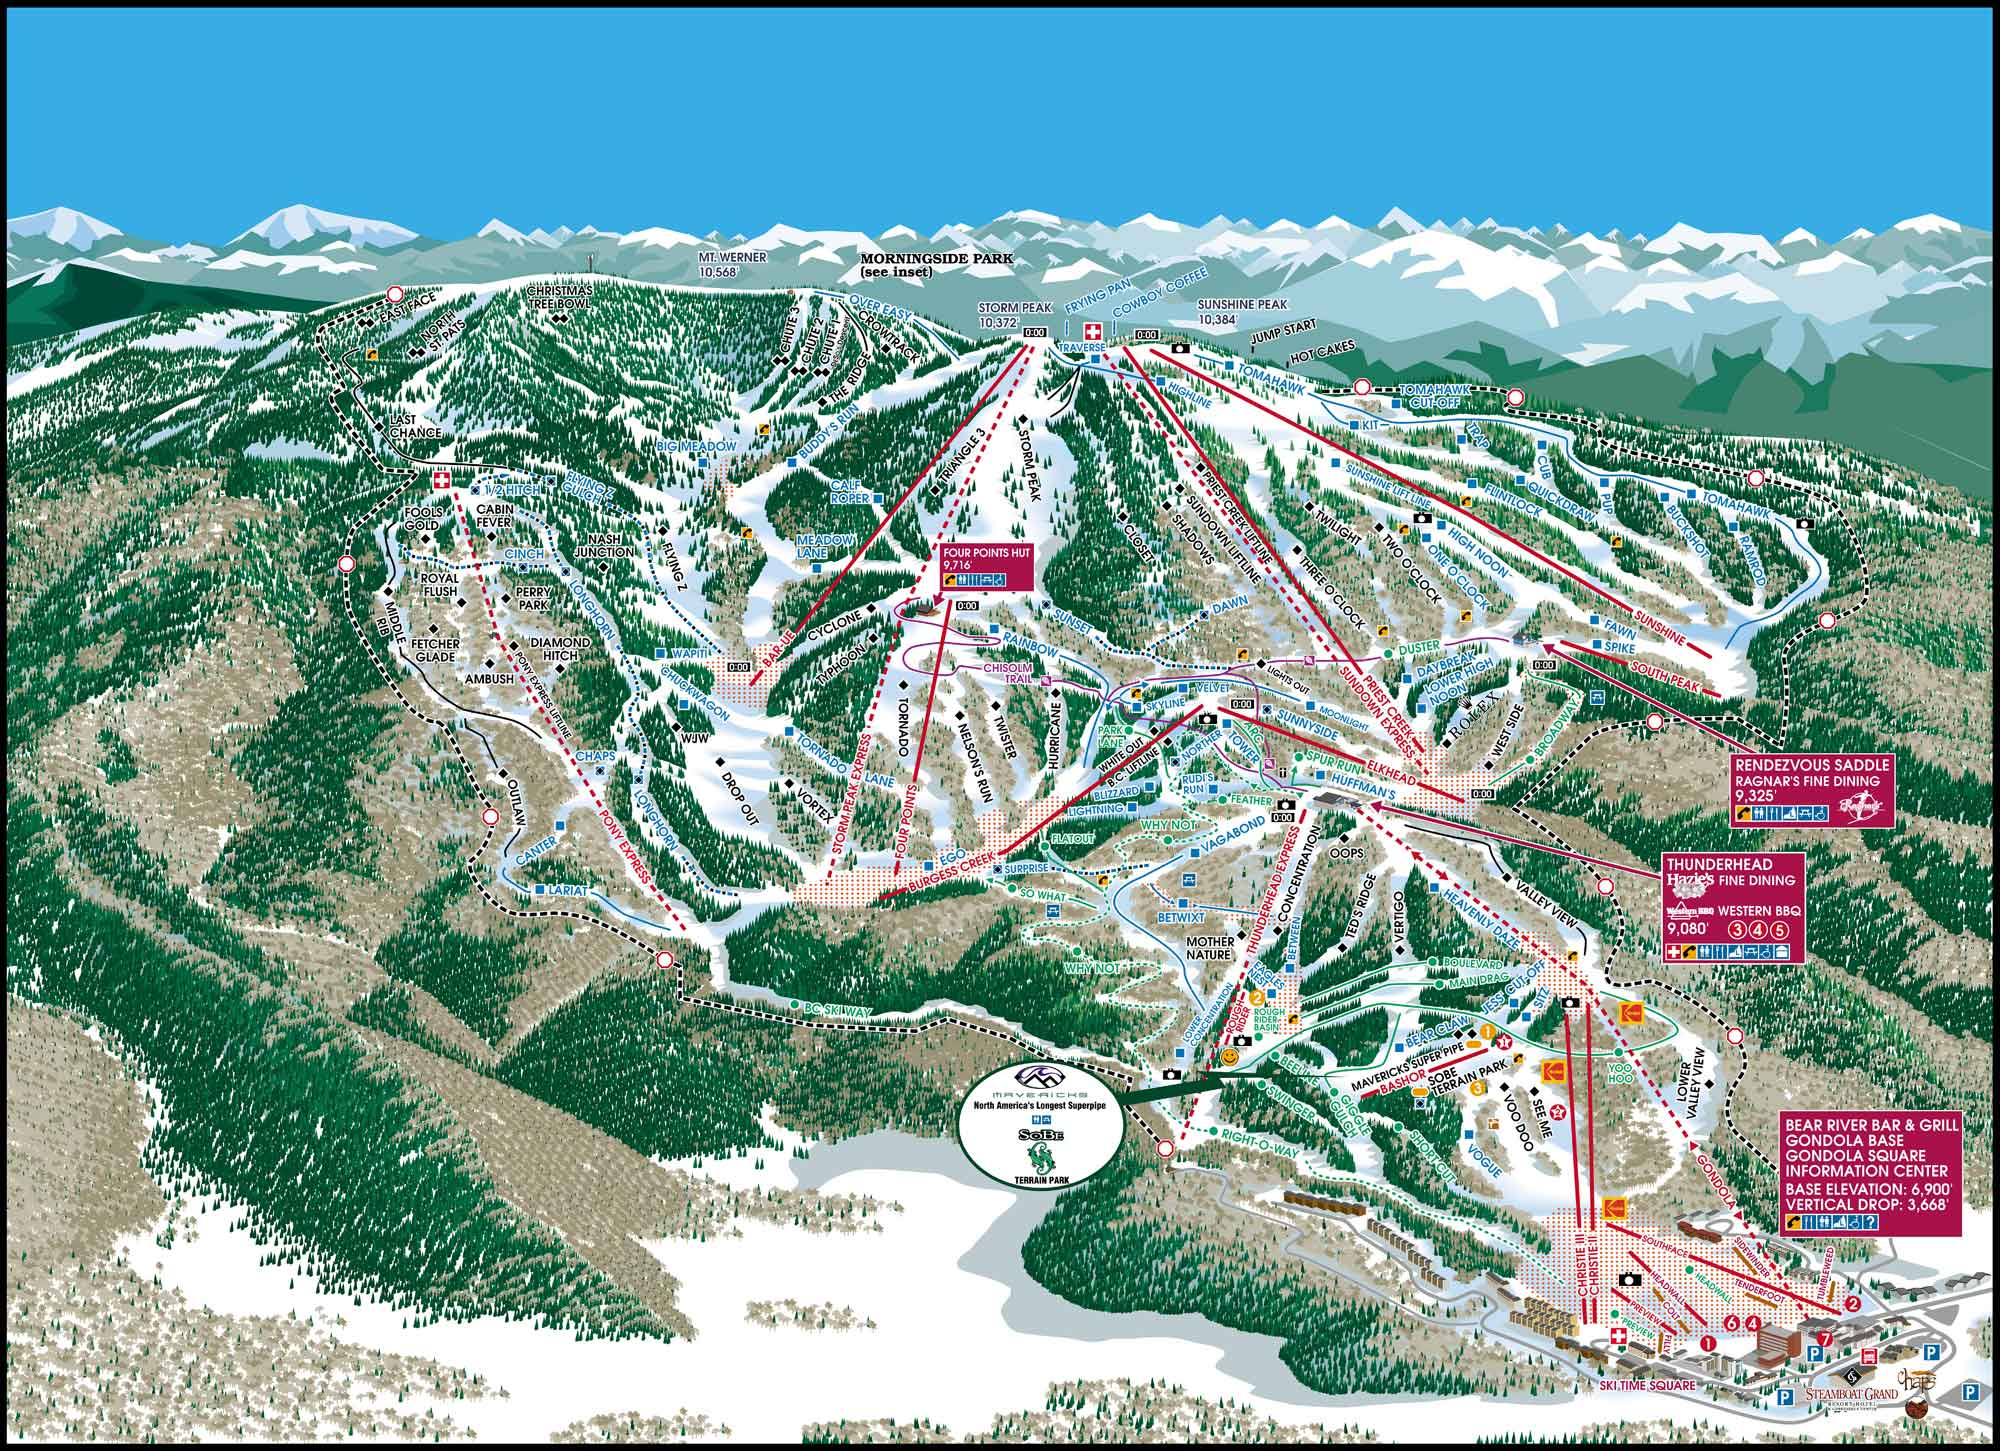 Steamboat Ski Resort Guide Location Map  Steamboat Ski Holiday - Map of colorado ski resorts and cities